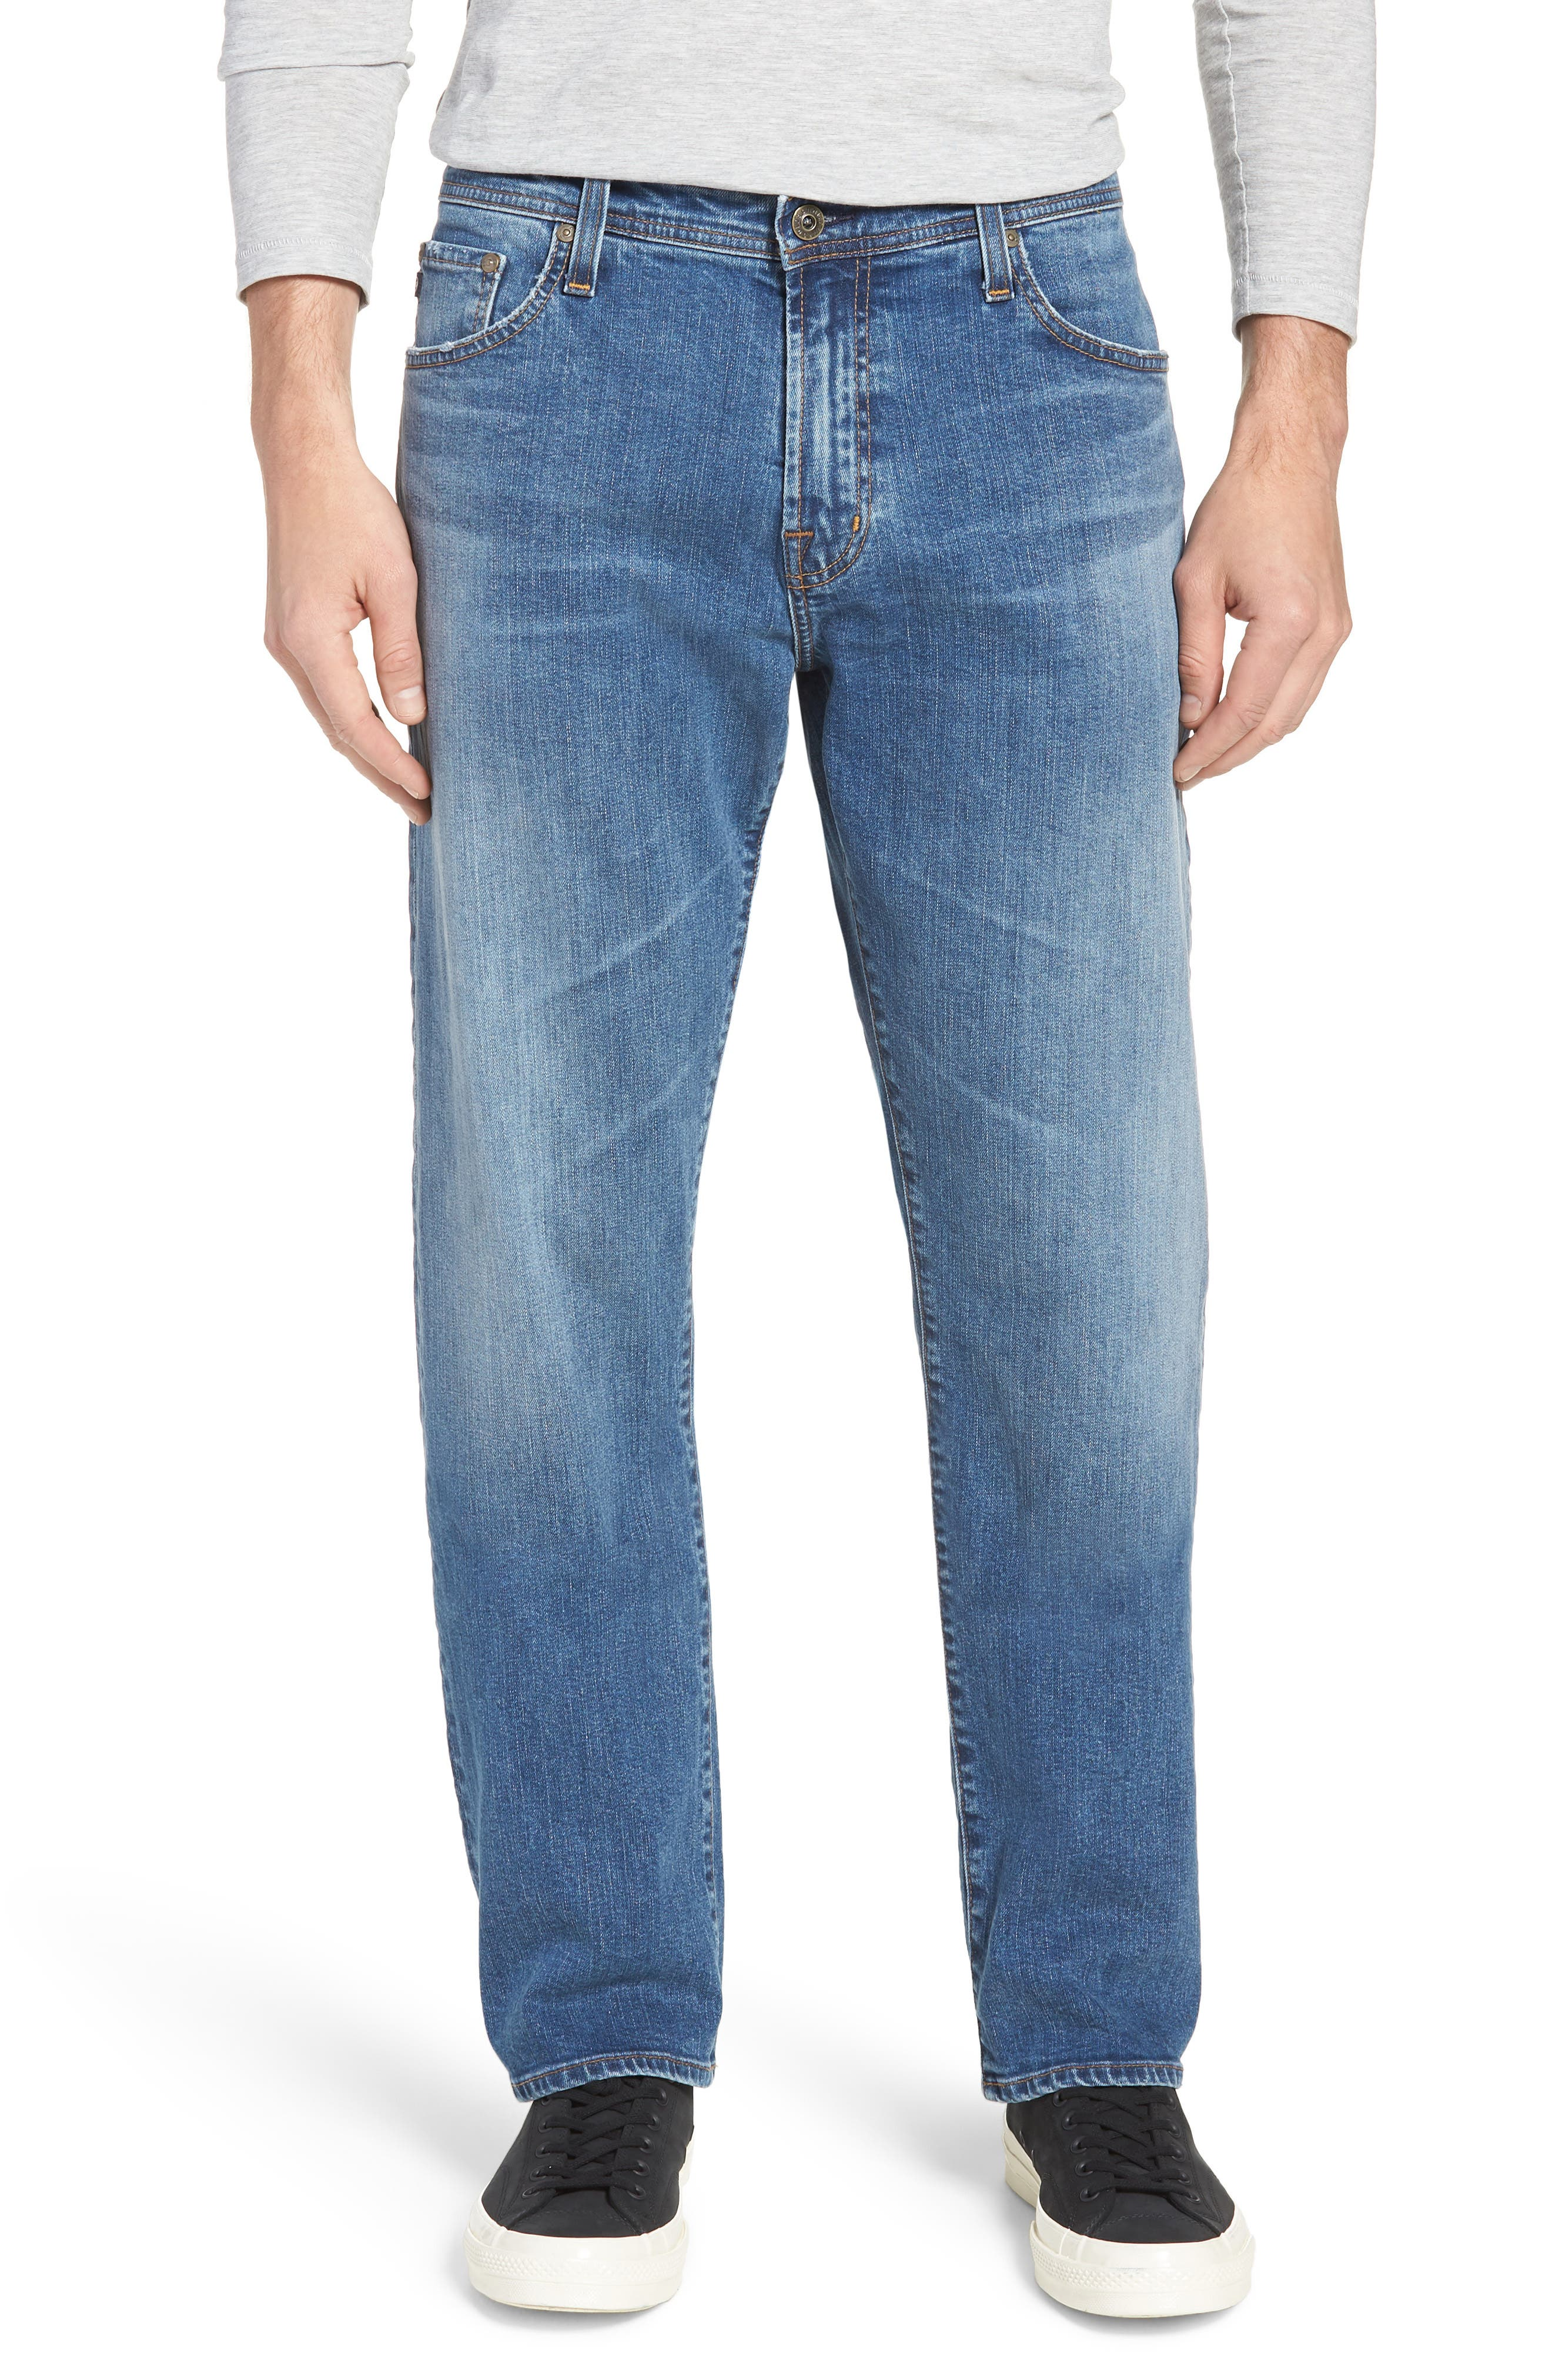 Ives Straight Leg Jeans,                         Main,                         color, 485